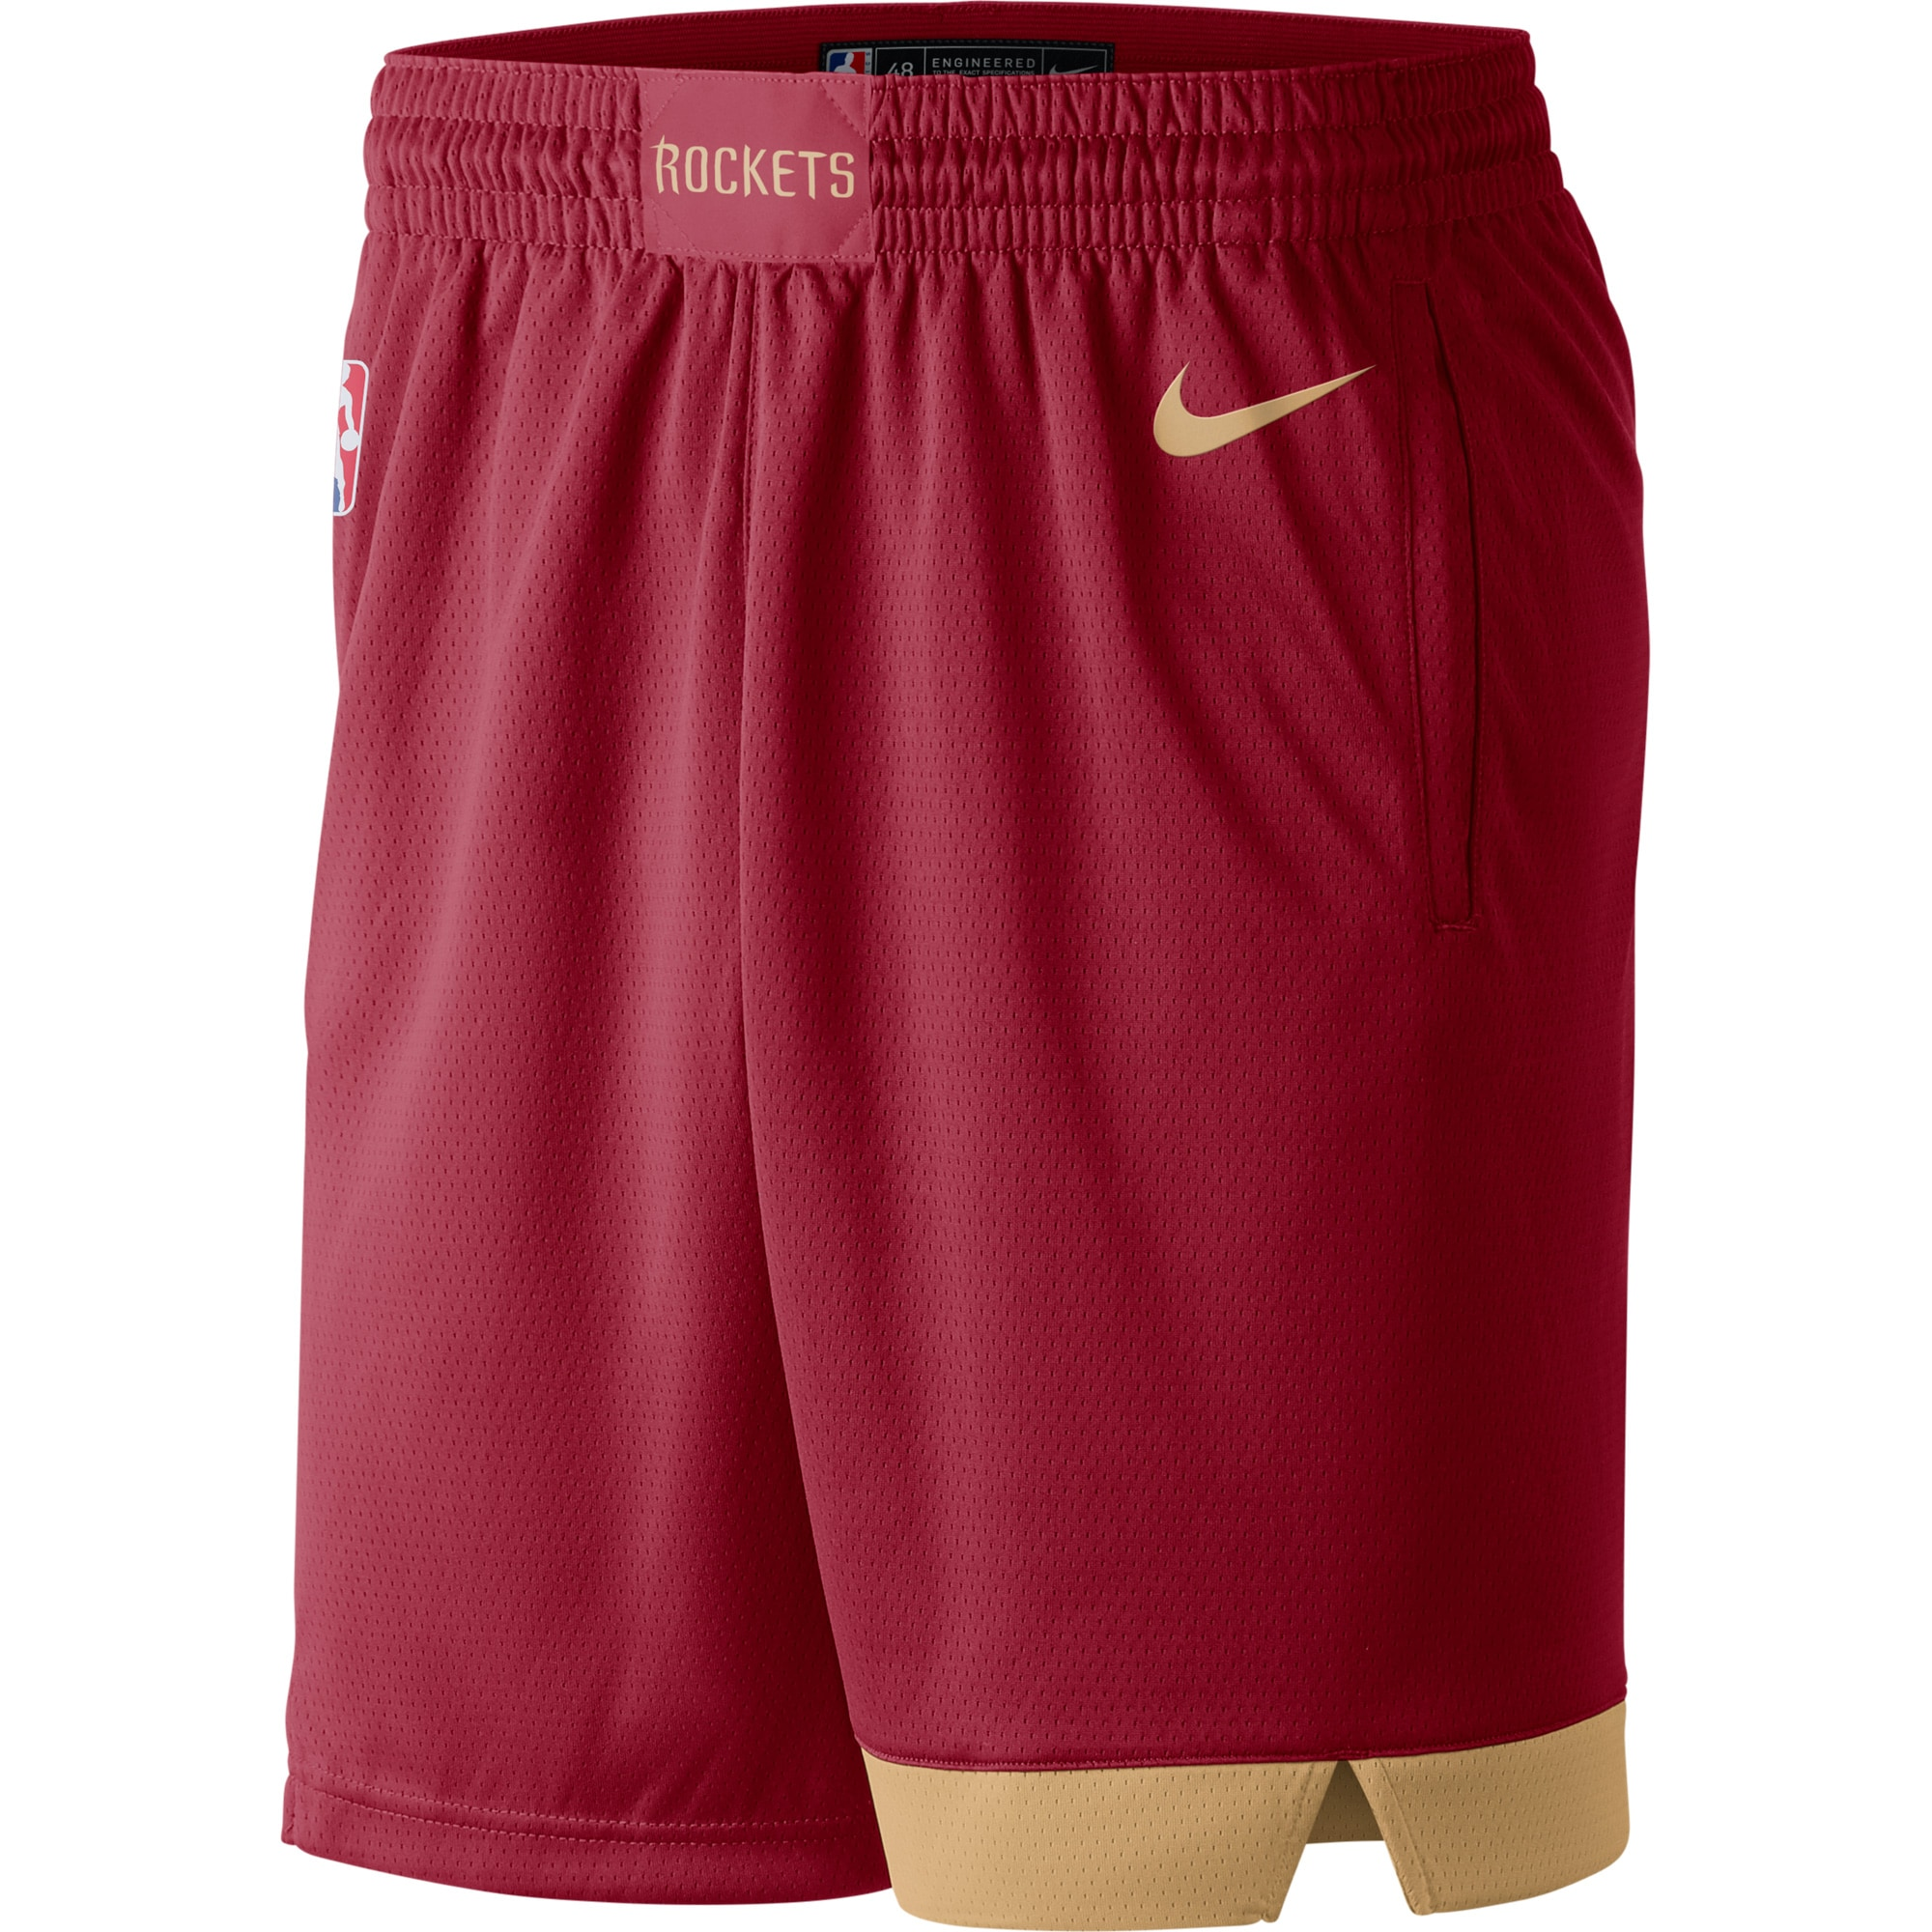 Houston Rockets Nike City Edition Swingman Performance Shorts - Red